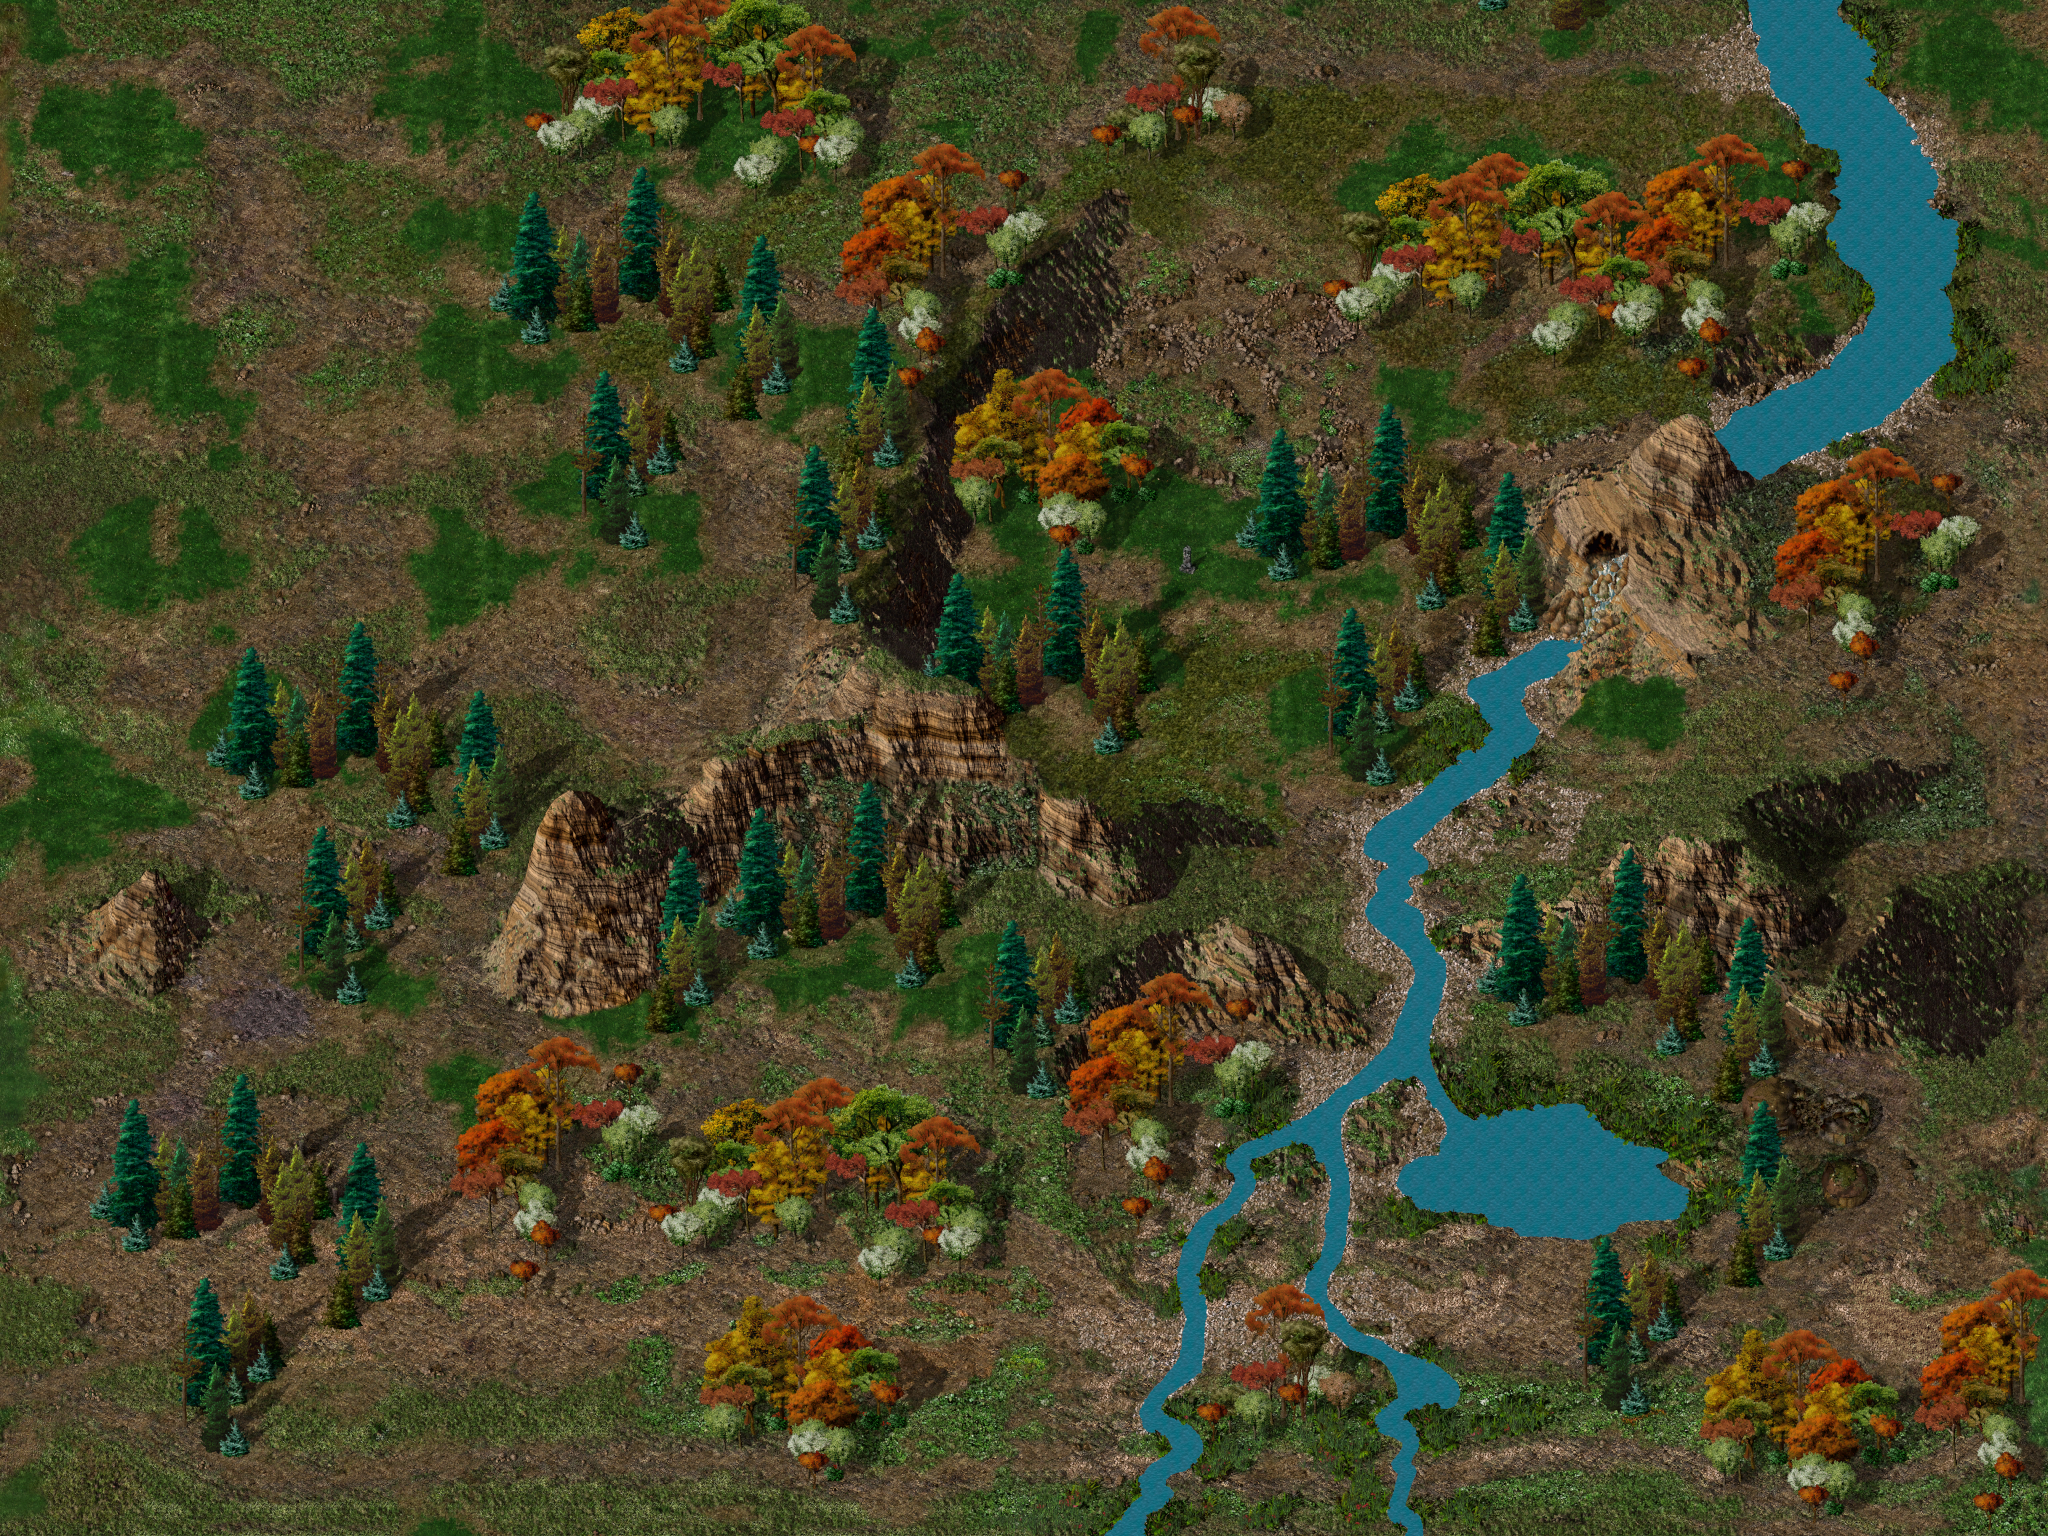 Fire Leaf Forest | Baldur's Gate Wiki | FANDOM powered by Wikia